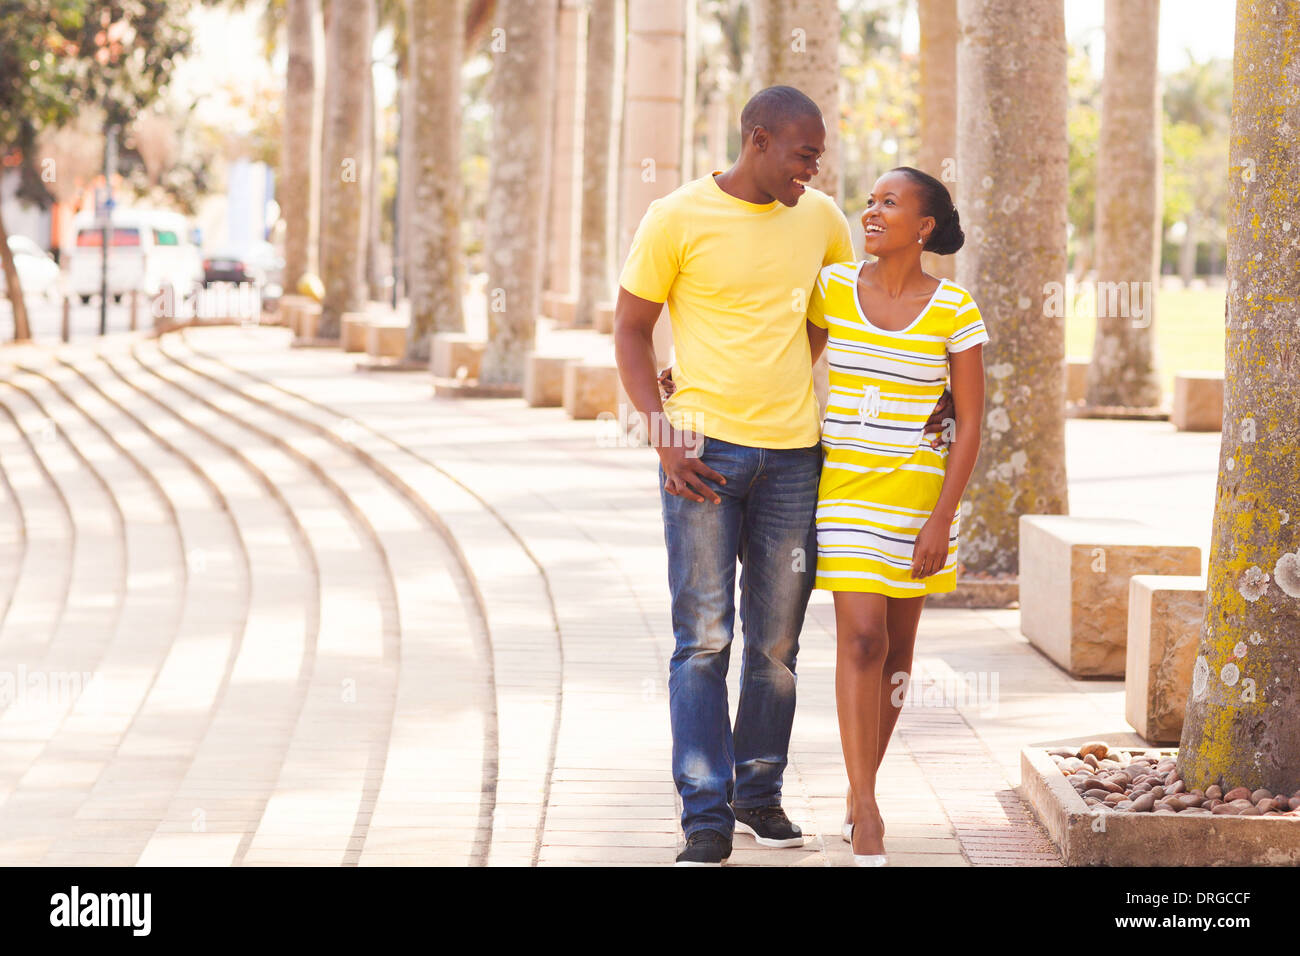 Cheerful young afro American couple walking on urban street Photo Stock